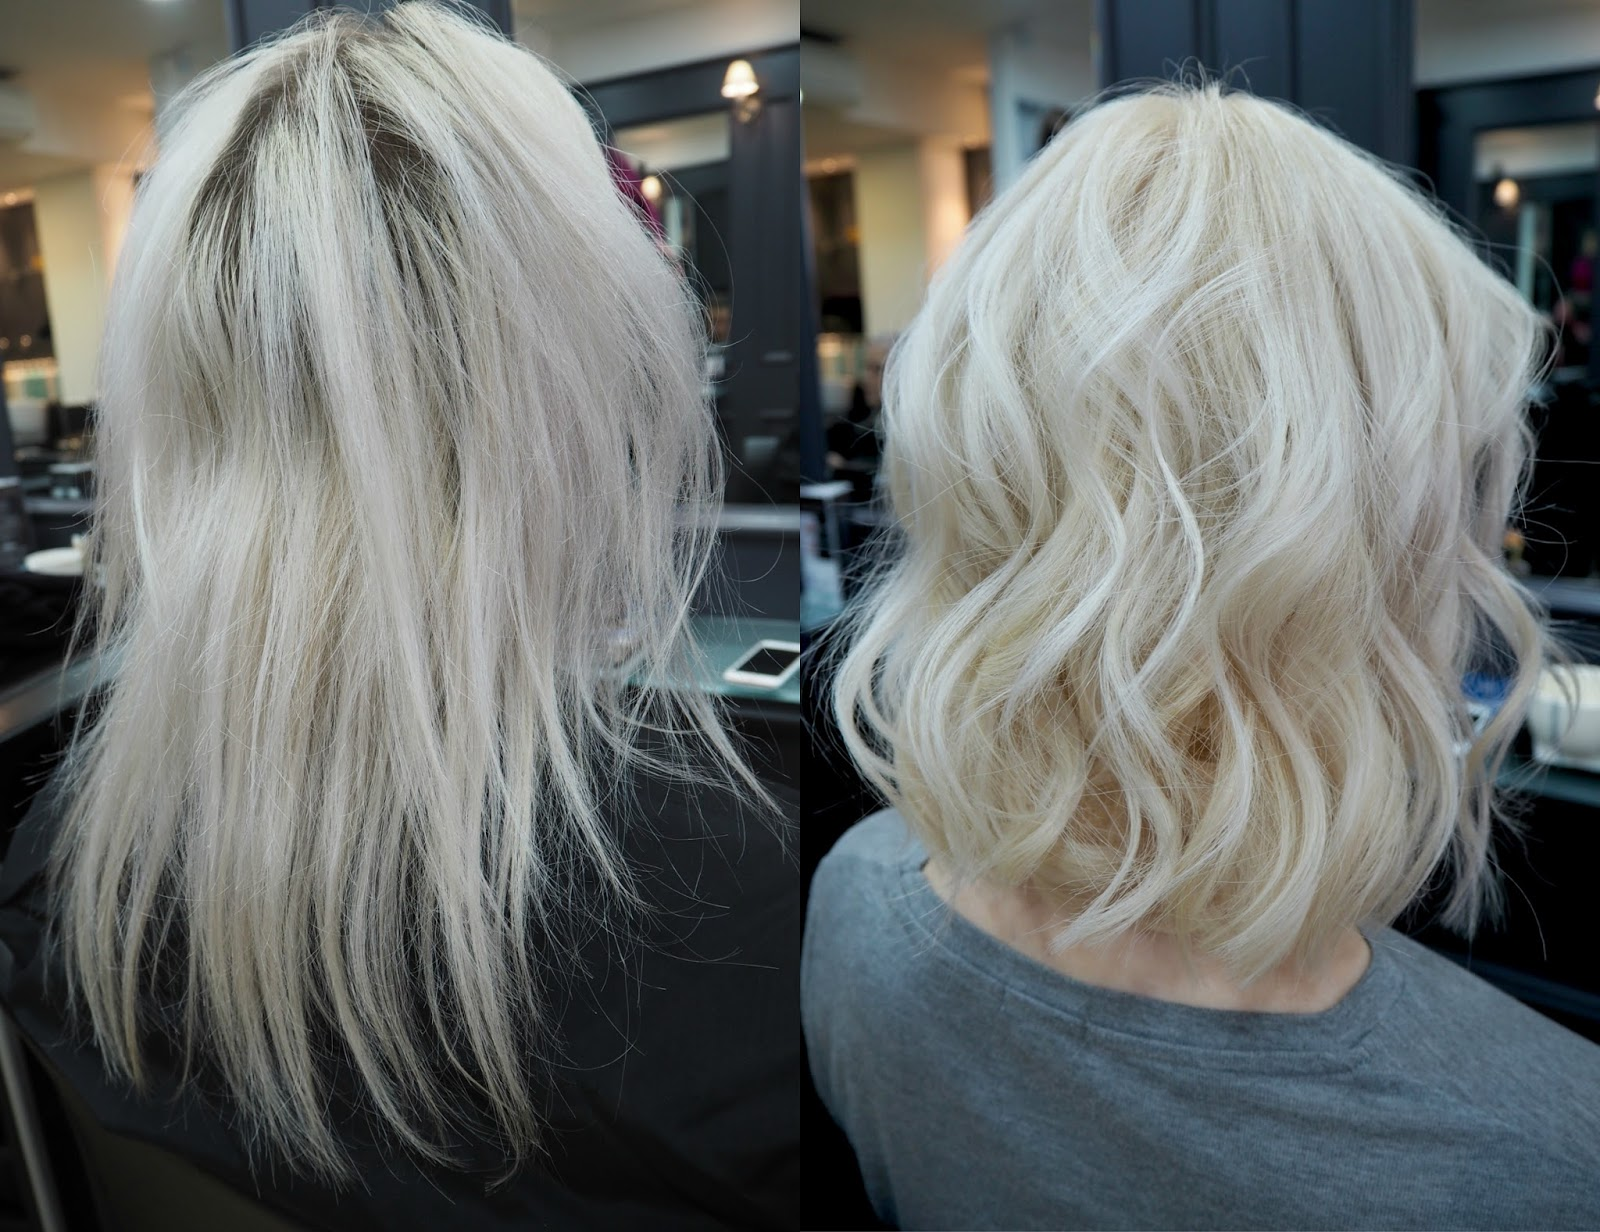 Before and after my LOB, blonde platinum hair